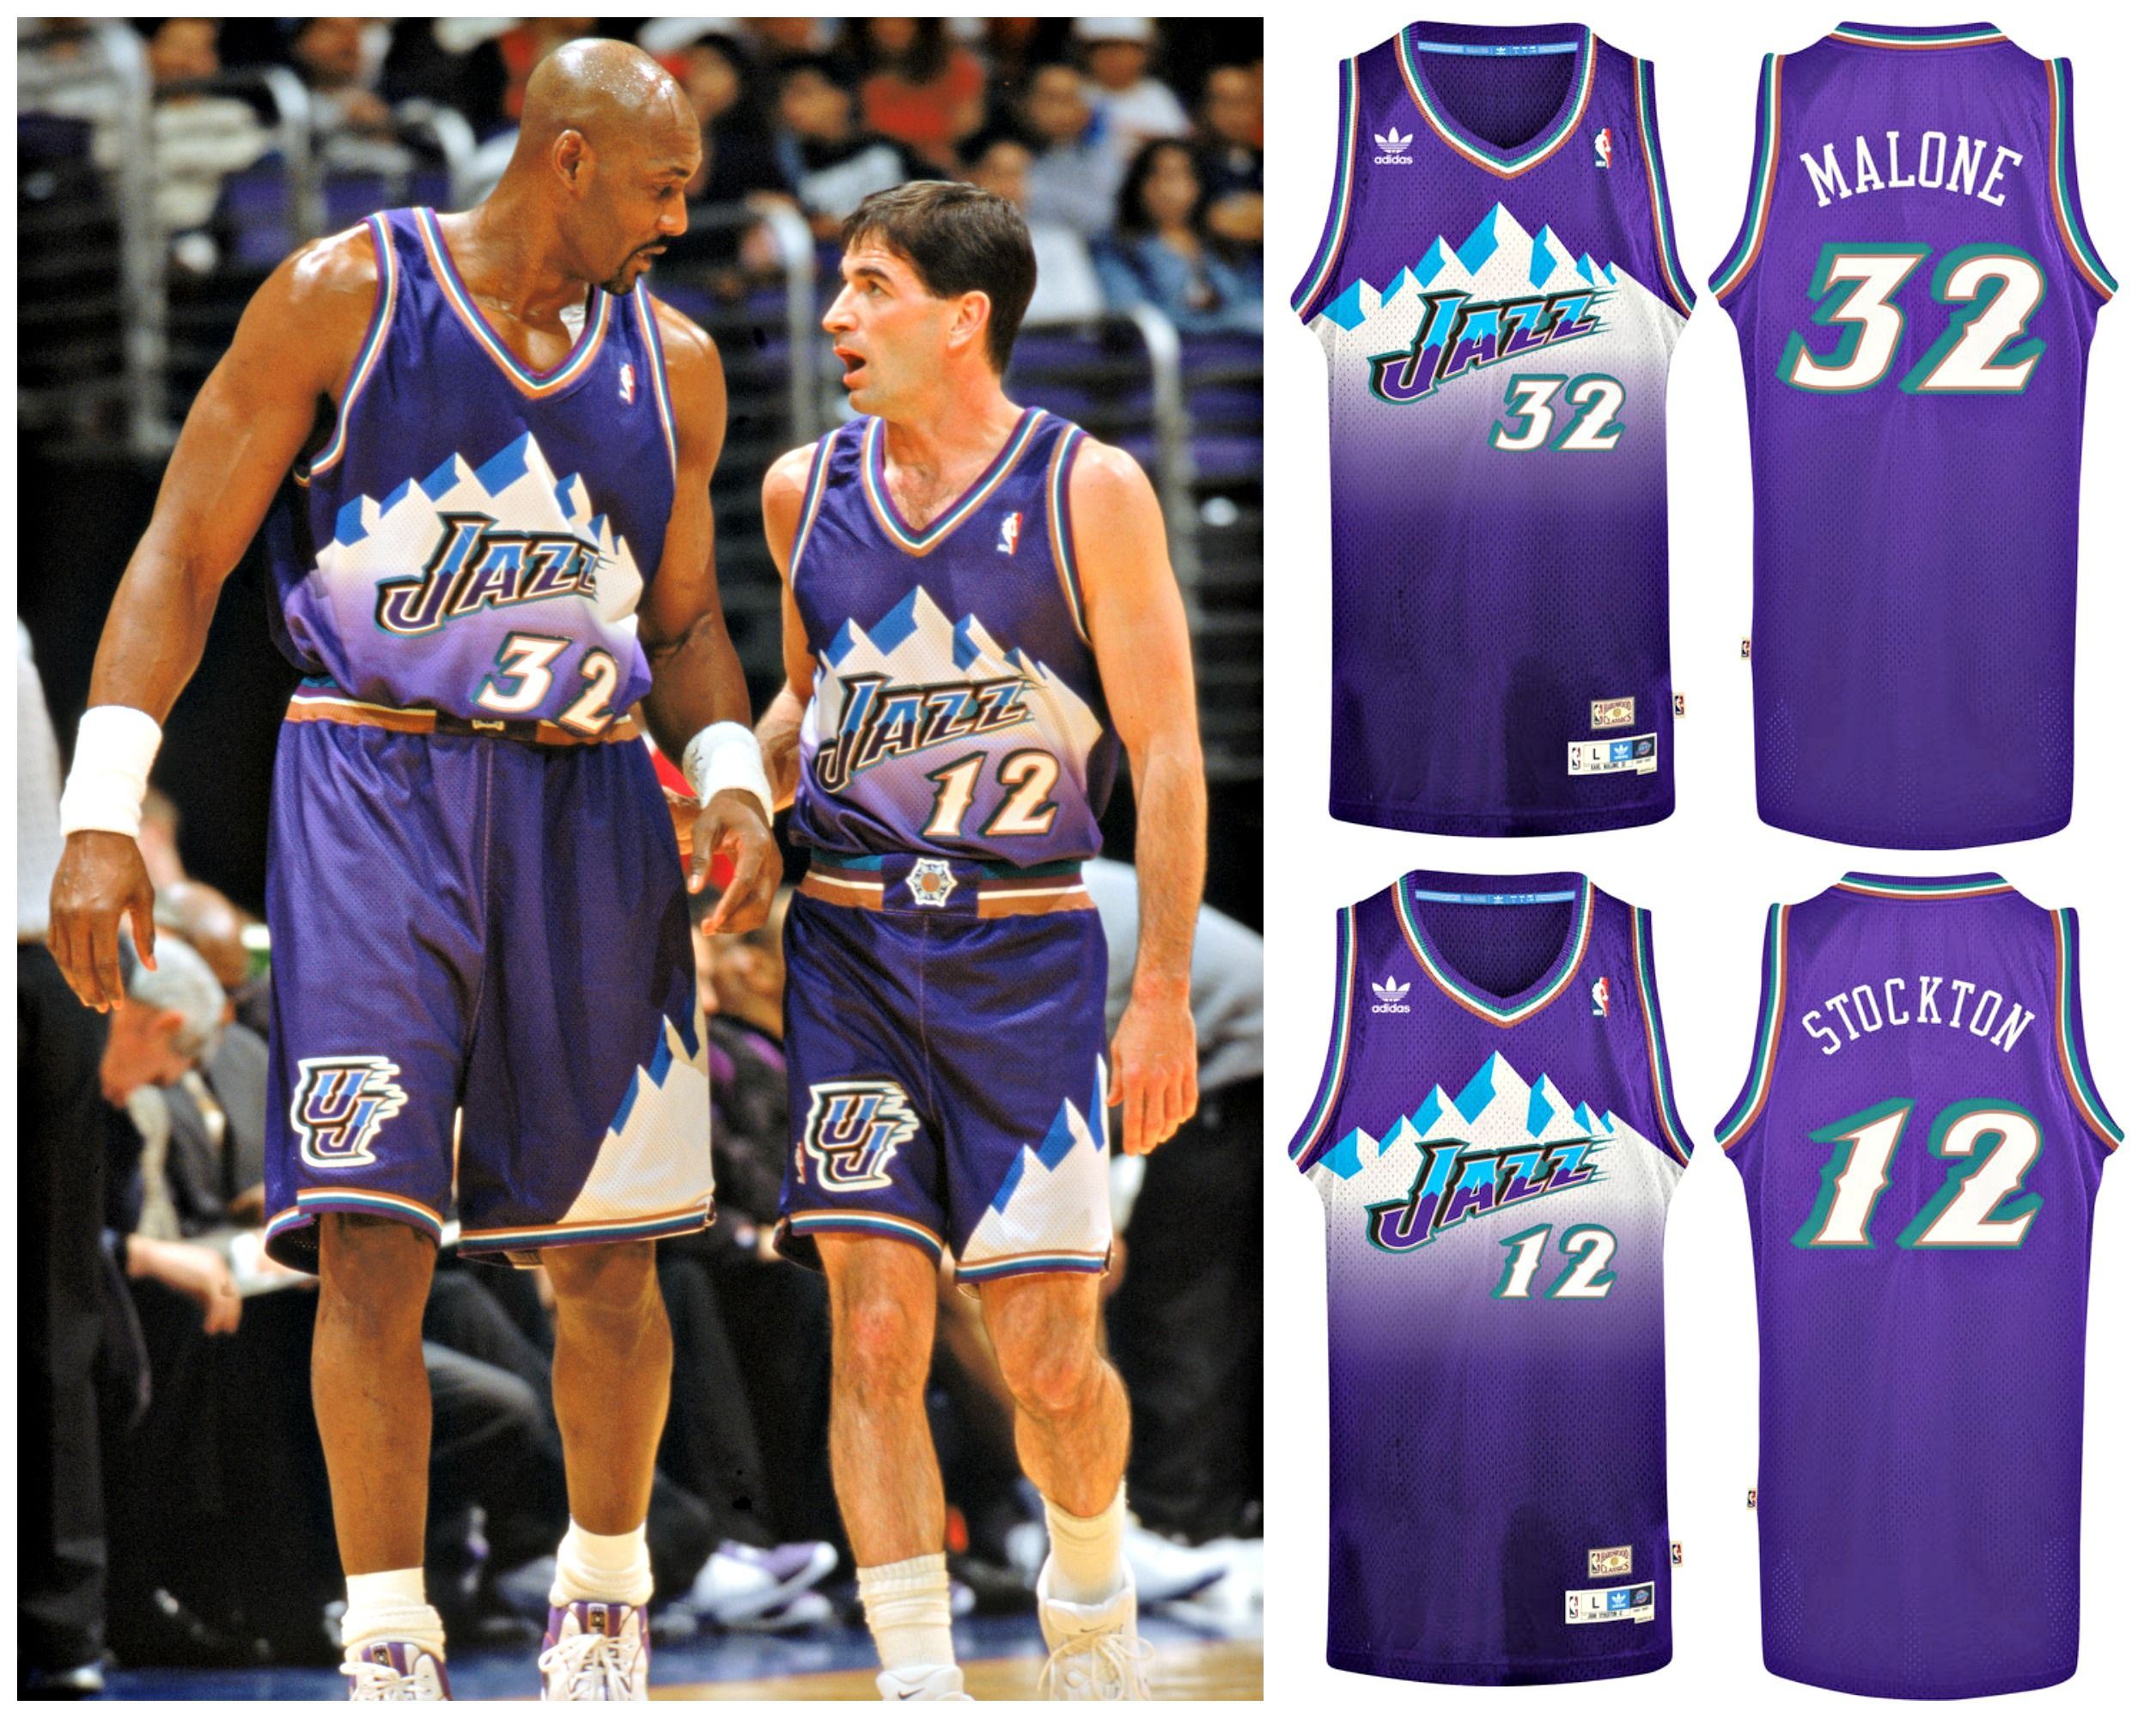 a6a5c03b0 Stockton & Malone: one of the best NBA duos of all time, one of the best  NBA jerseys of all time.